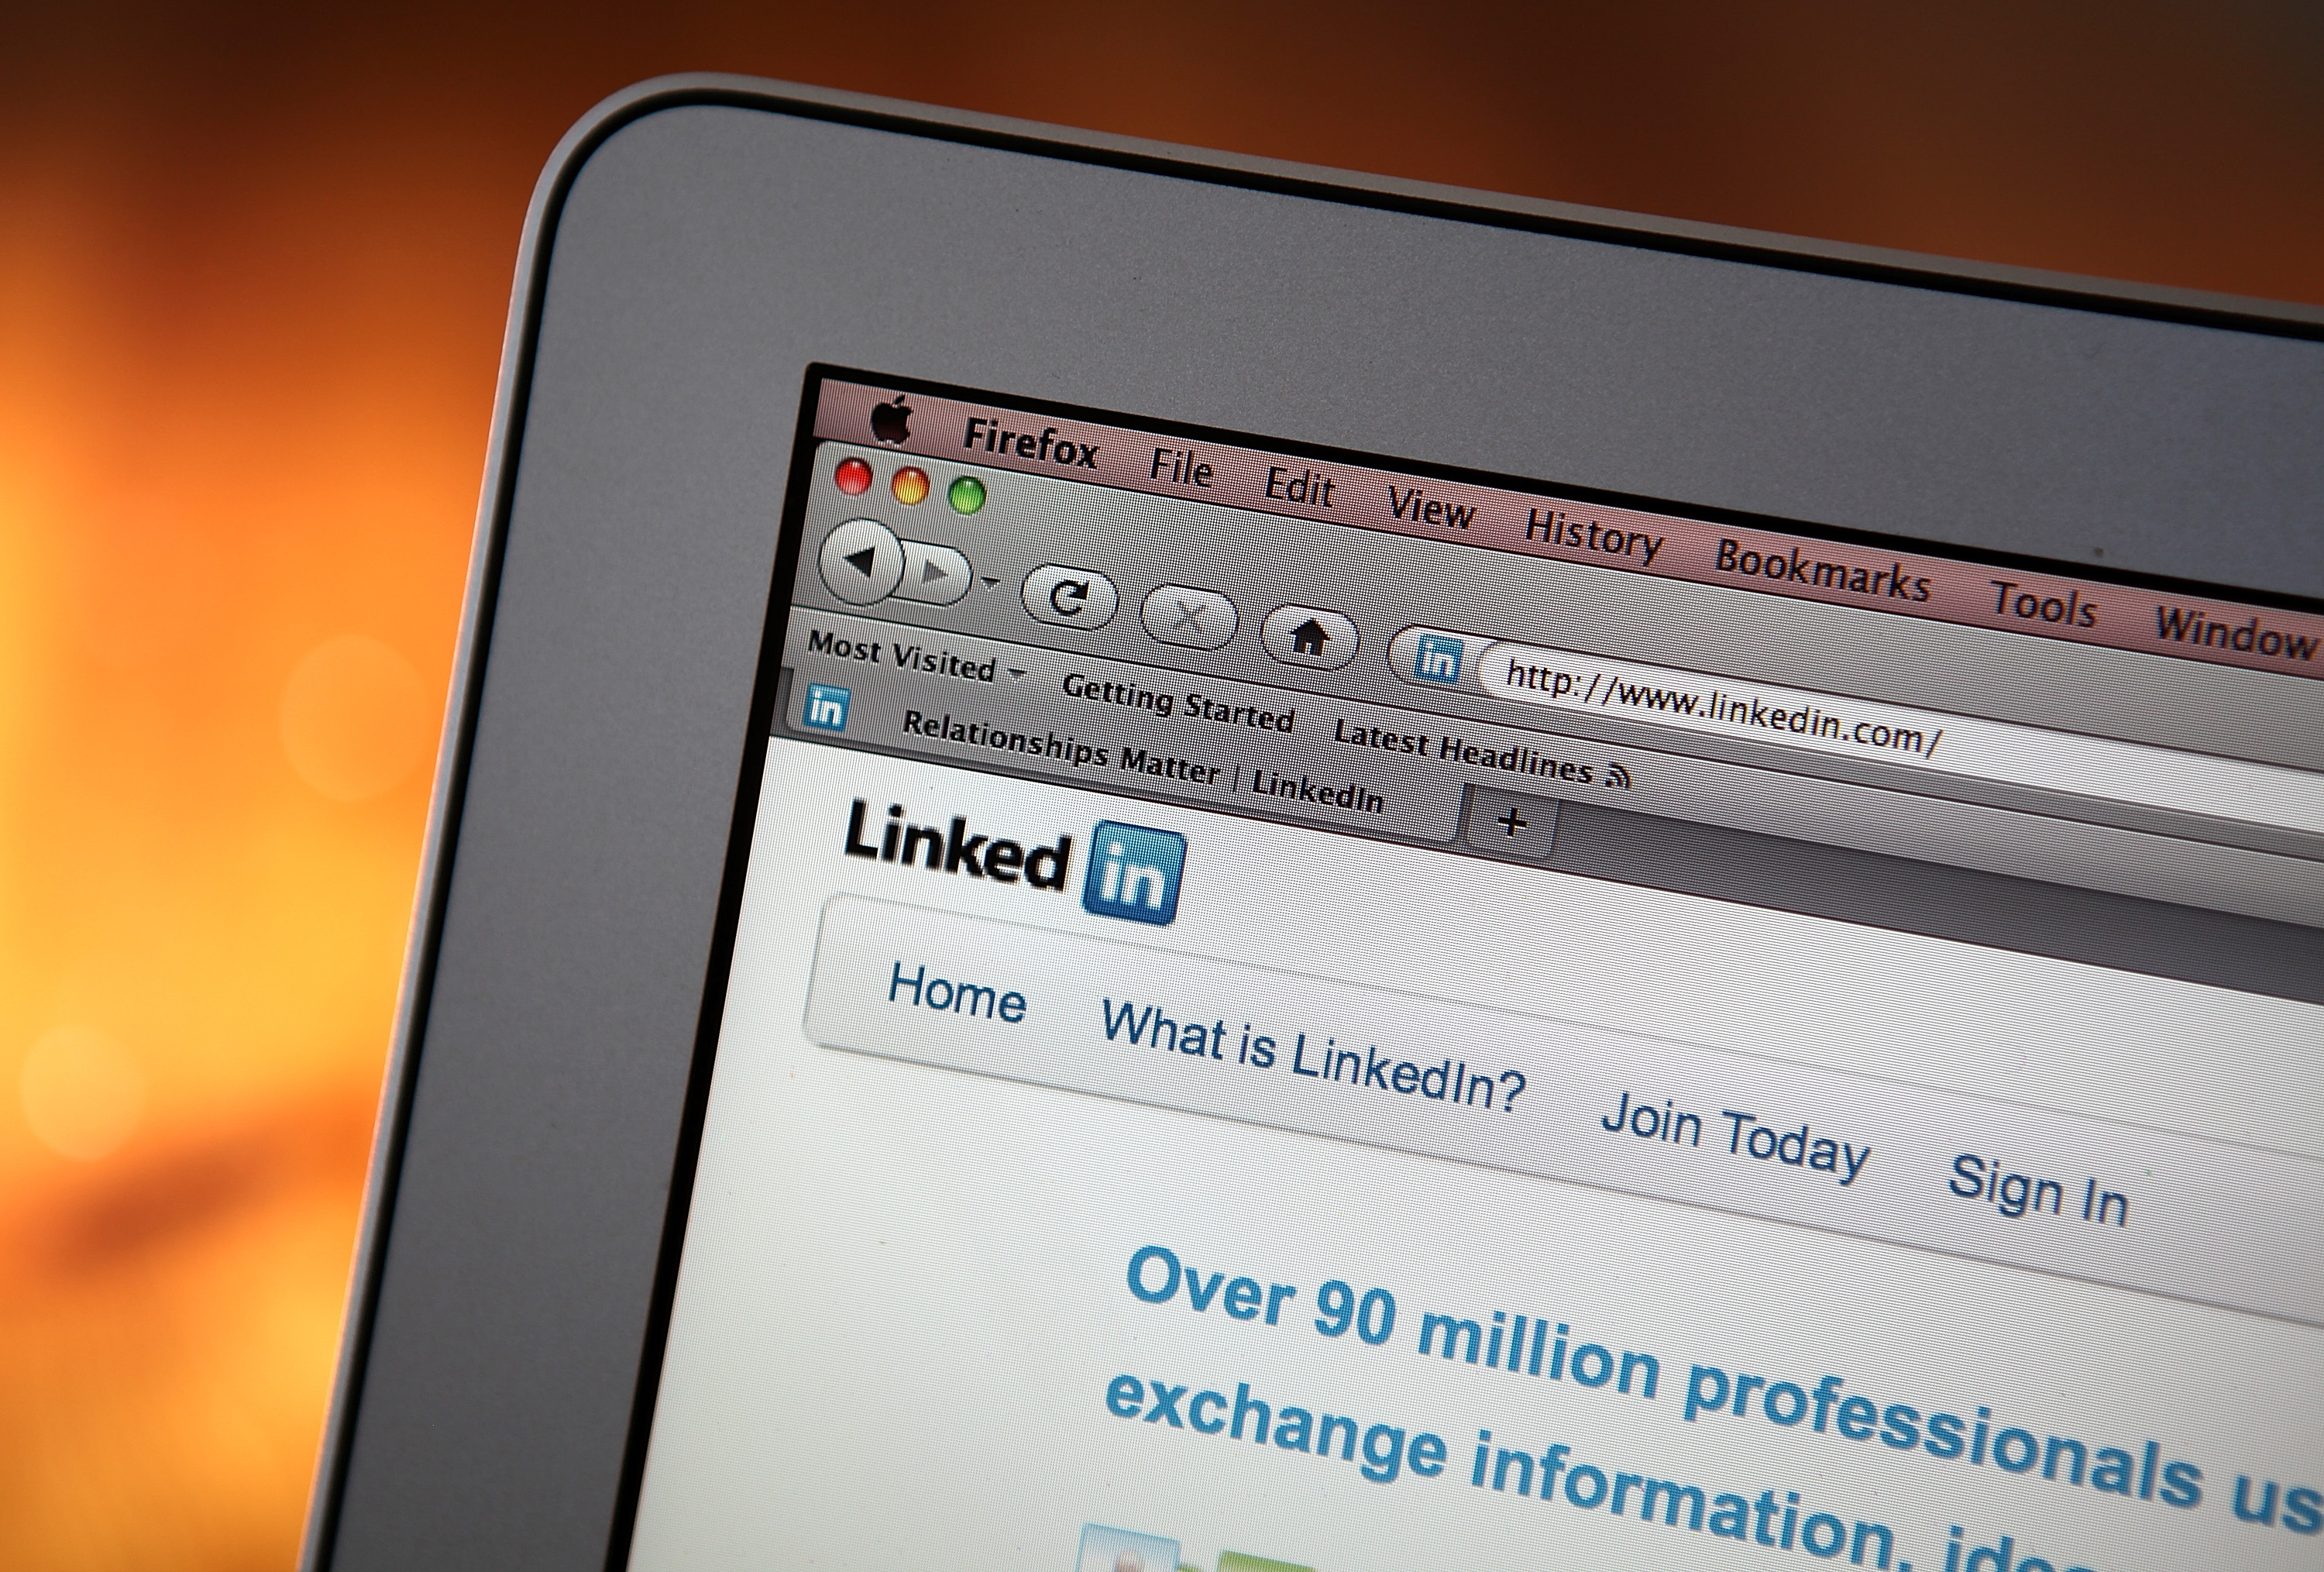 LinkedIn Acquires Job Matching Service Bright For $120M